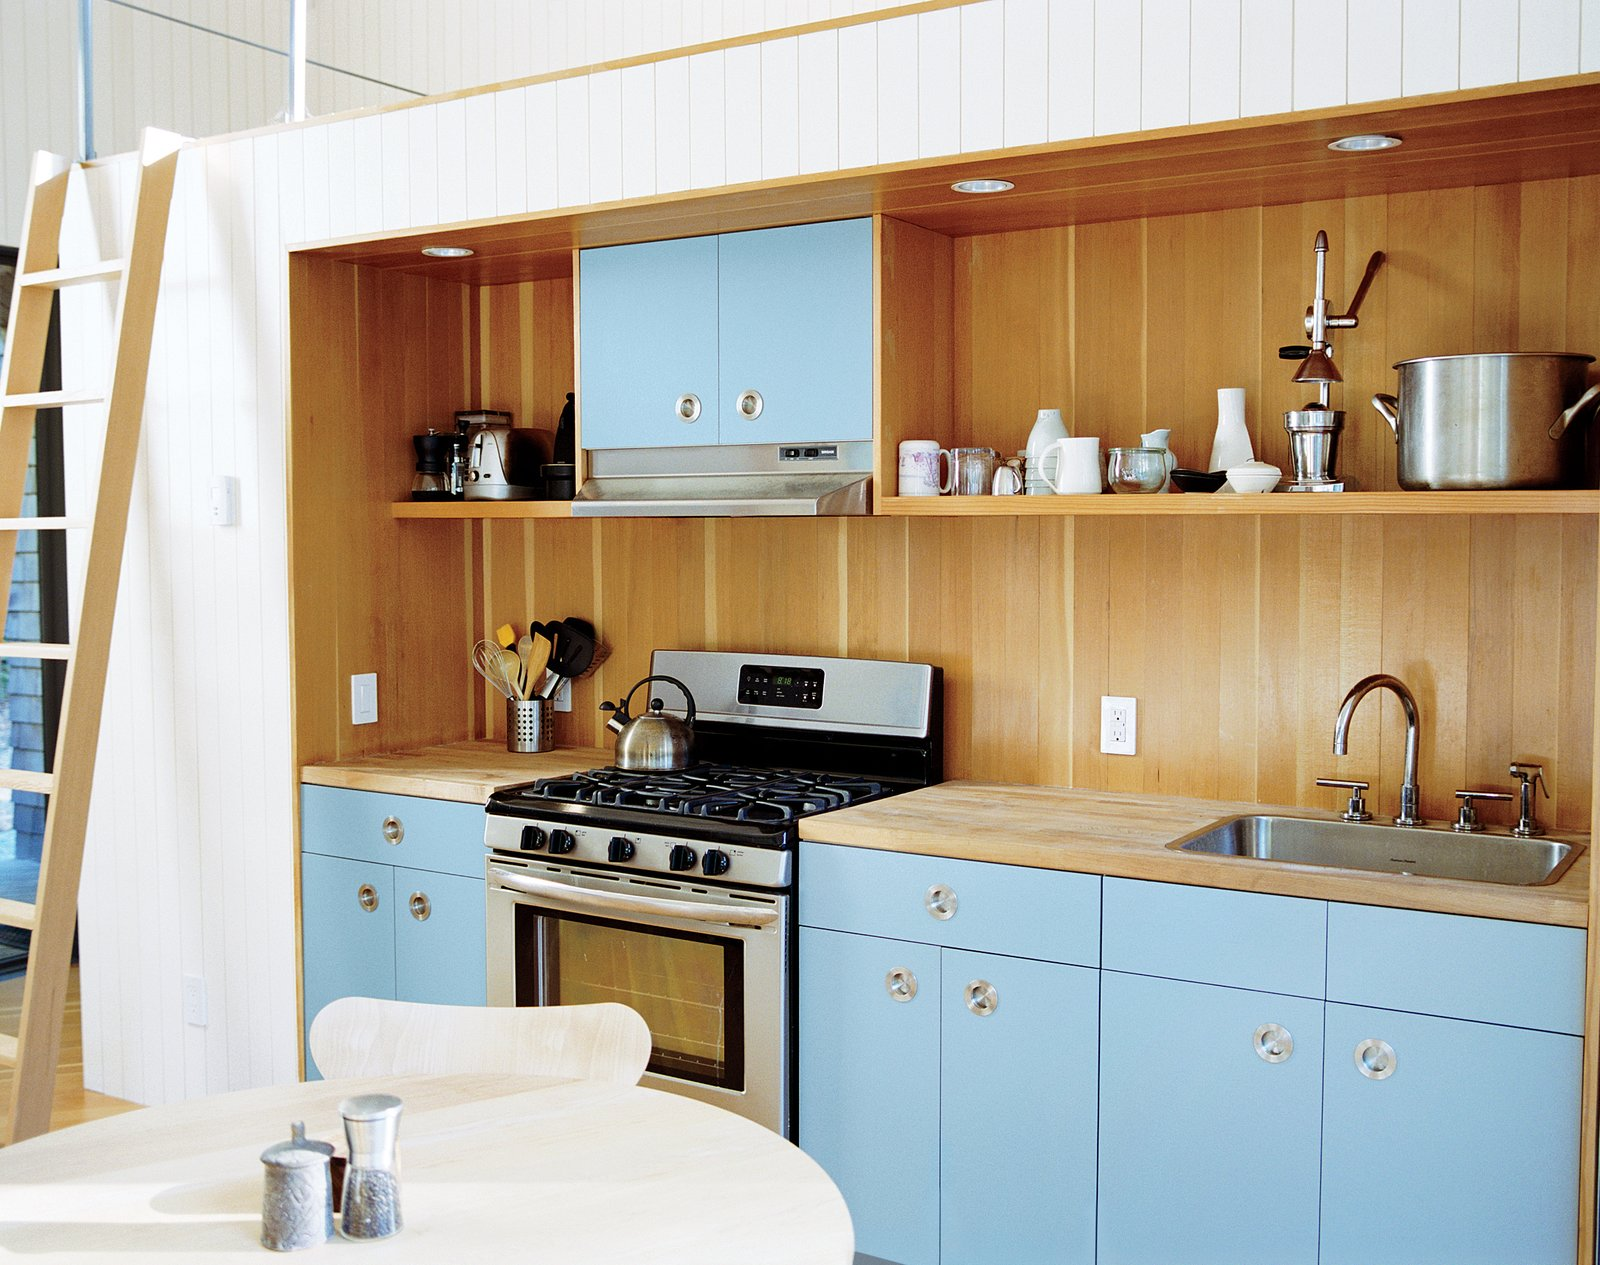 The kitchen area, which has IKEA cabinets with custom doors and pulls by Doug Mockett, is also recessed, with a lofted area above it. Tagged: Kitchen, Colorful Cabinet, and Wood Cabinet.  Photo 7 of 12 in This Tiny New England Cottage Is a No-Frills Weekend Hideaway